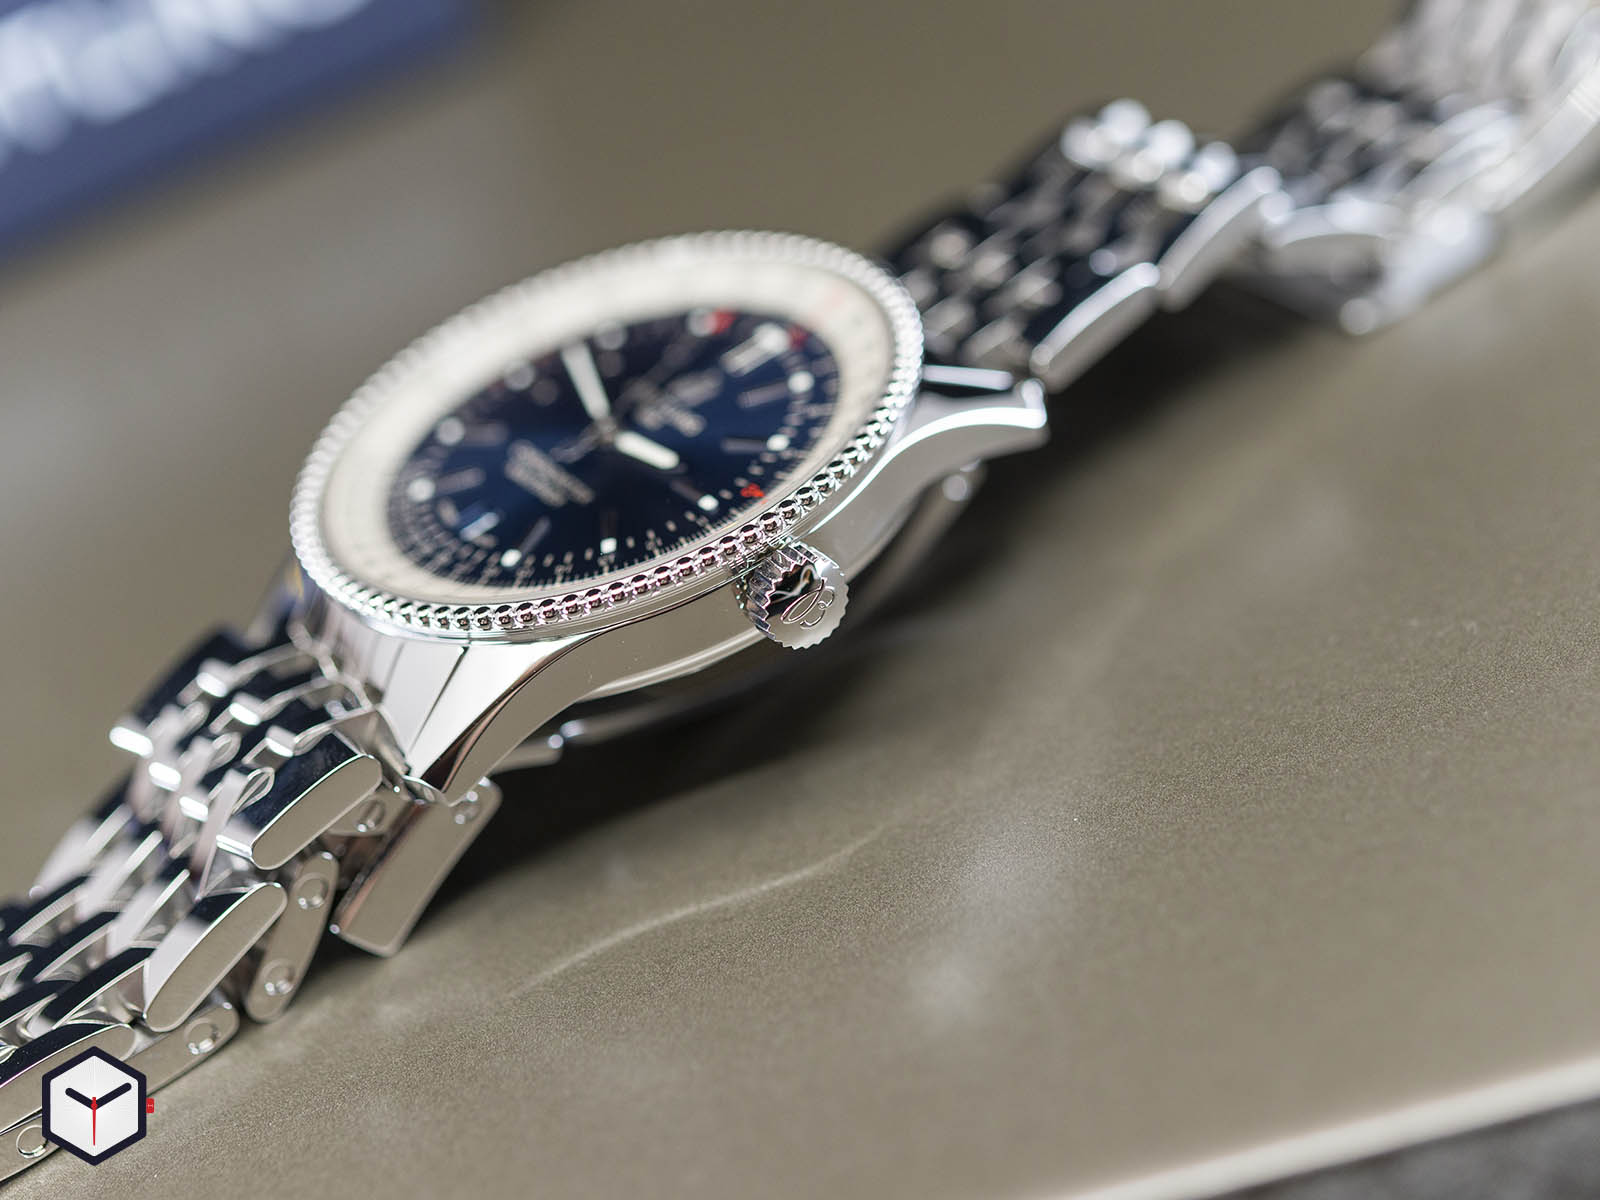 a17326211c1a1-breitling-navitimer-1-automatic-41-4.jpg